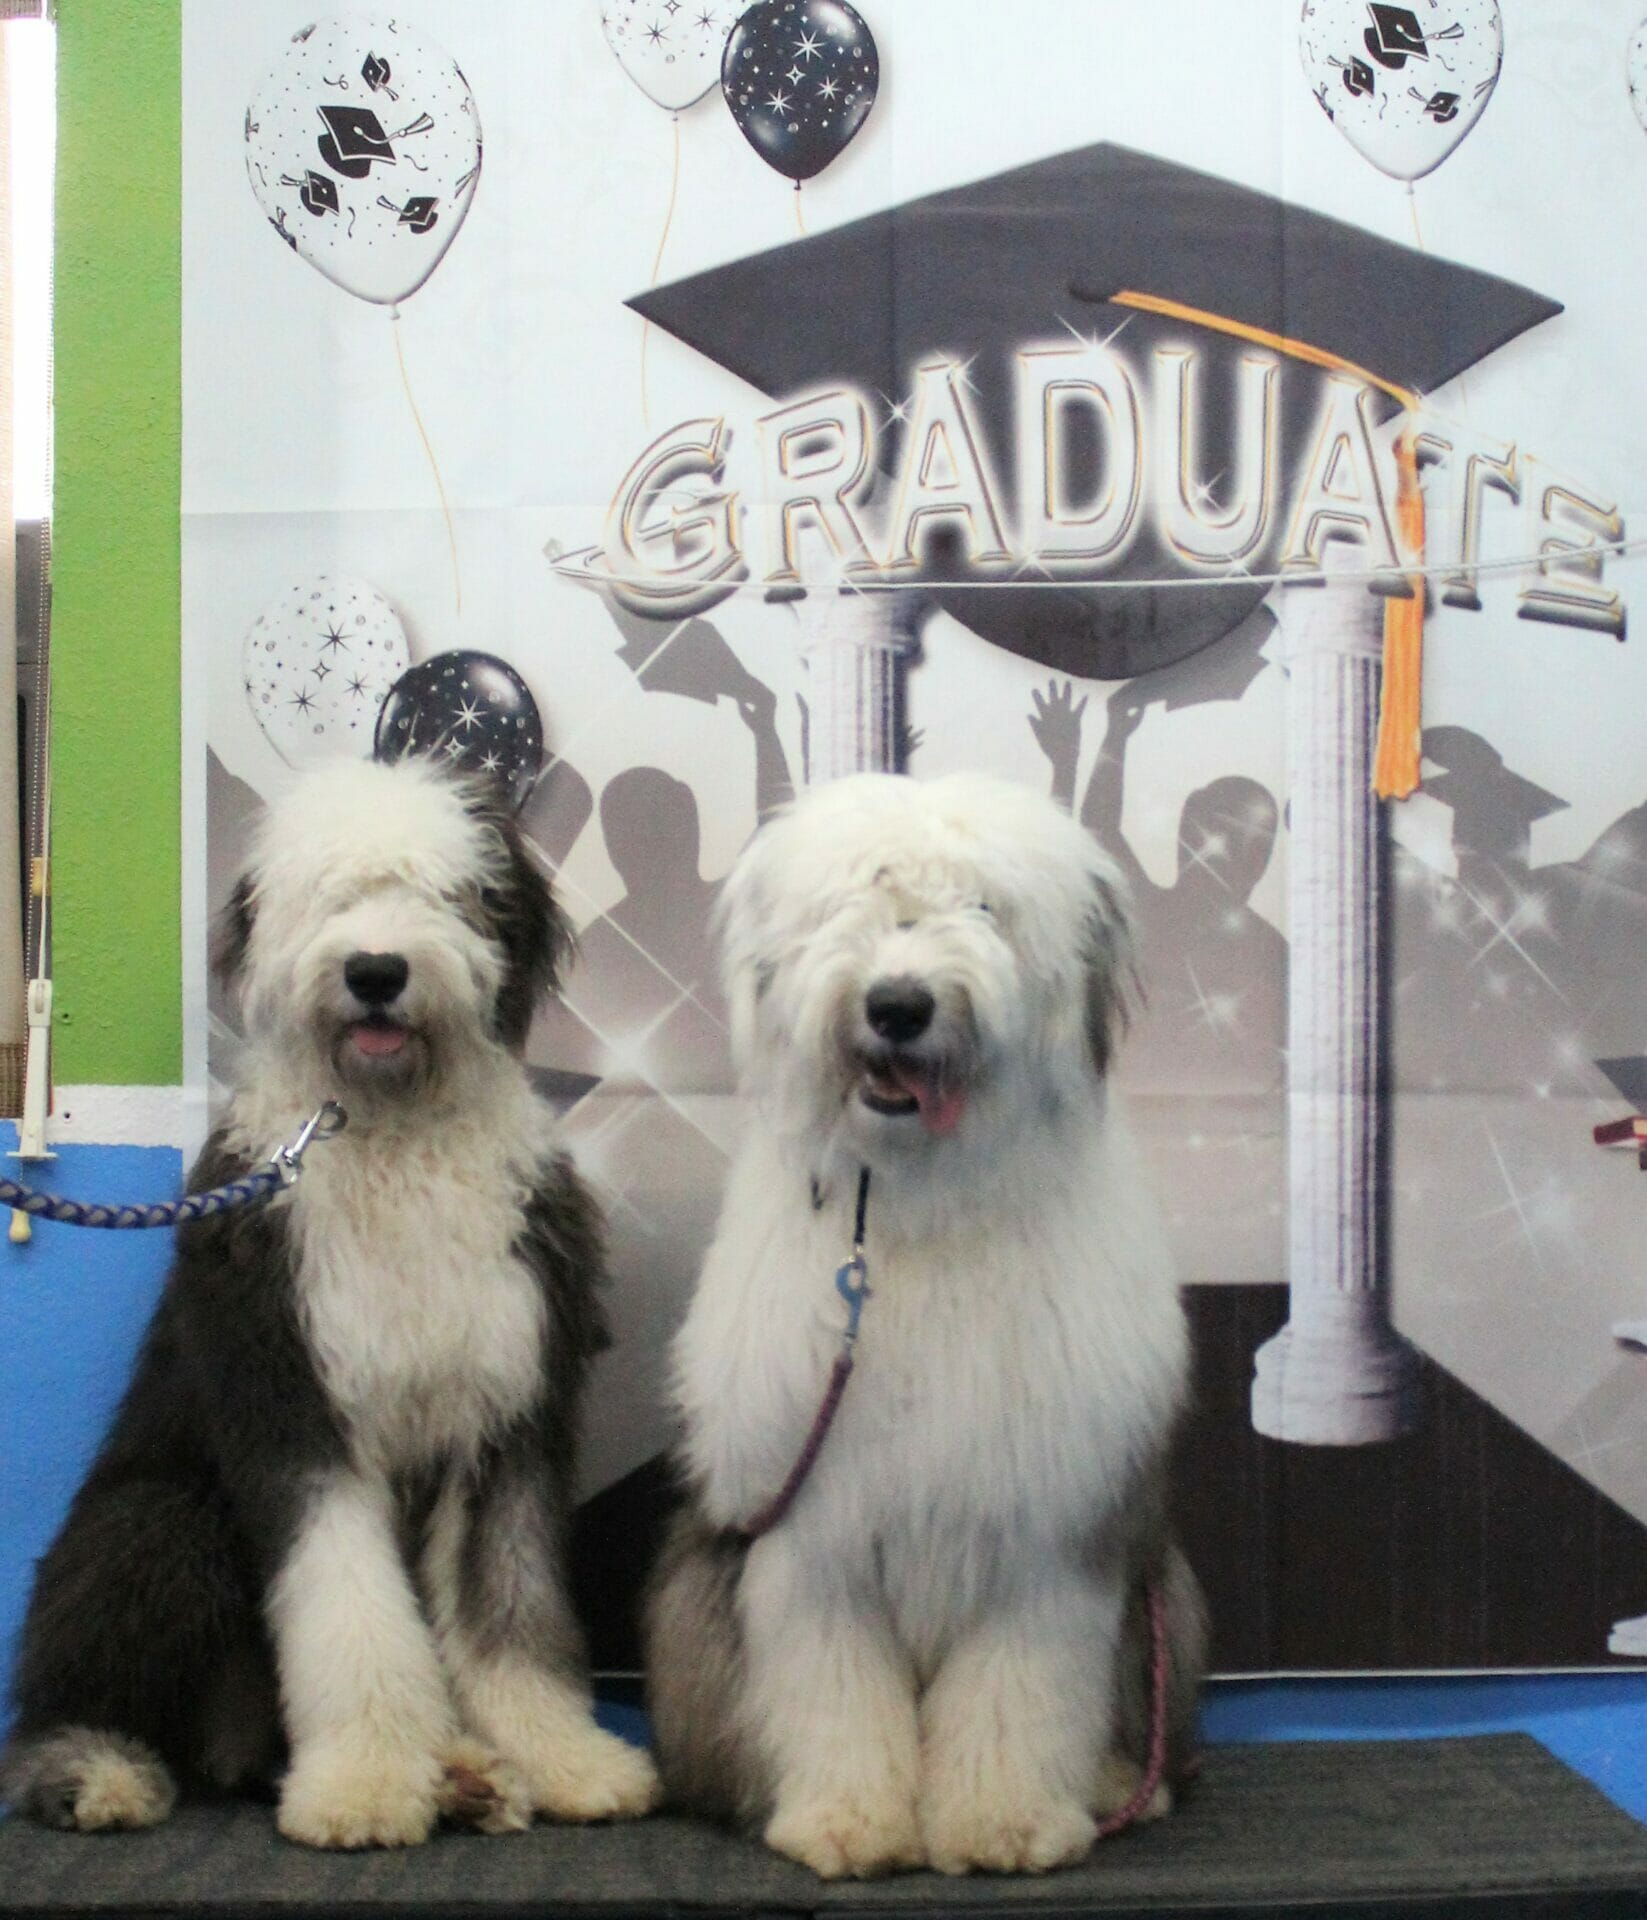 Bugsy & Dafodil graduation at Rockin' Dawgs!